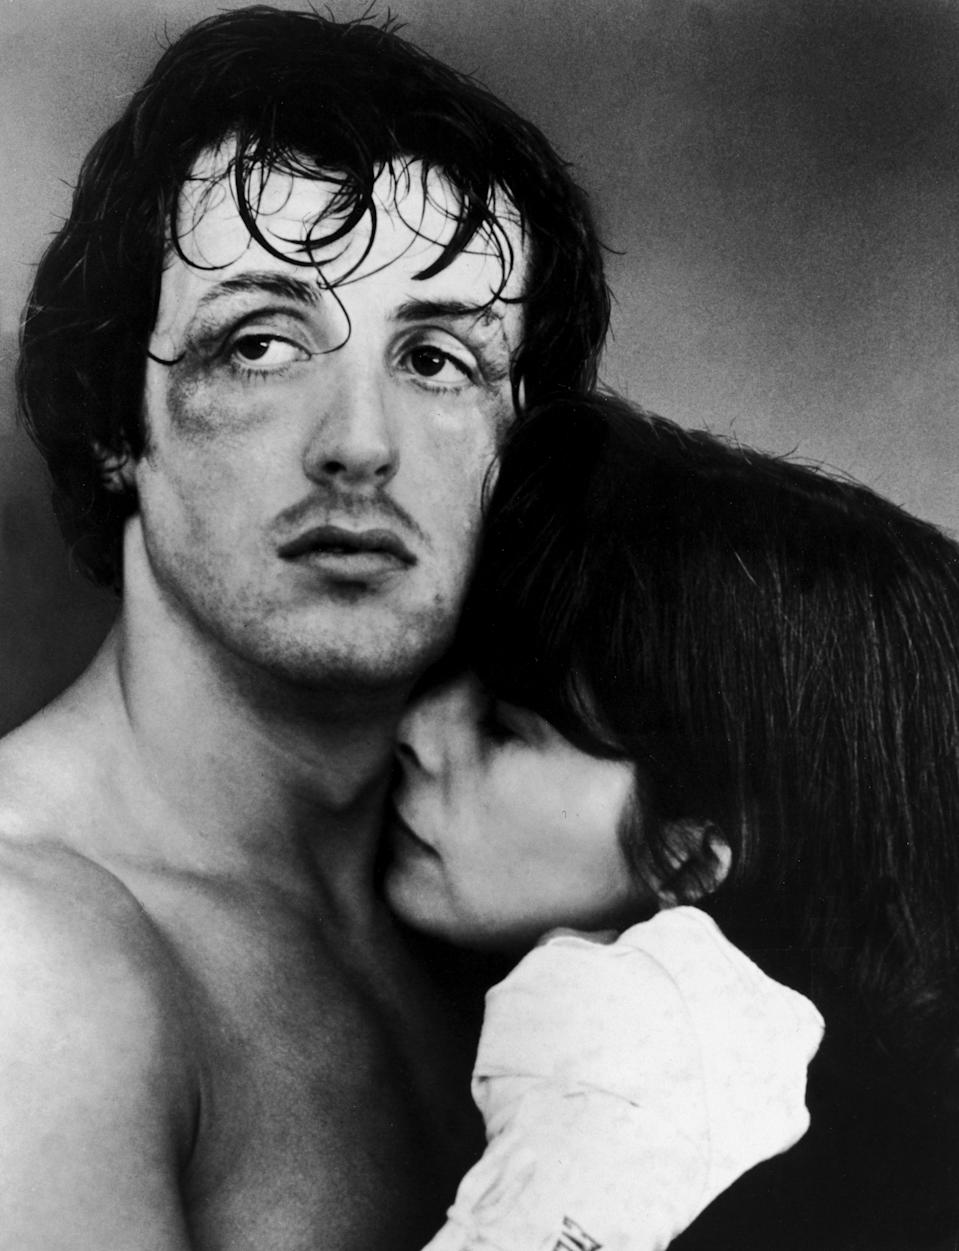 American actors Sylvester Stallone and Talia Shire embrace in a headshot still from the film, 'Rocky,' directed by John G. Avildsen, 1976. Stallone's face is bruised. (Photo by United Artists/Authenticated News/Courtesy of Getty Images)